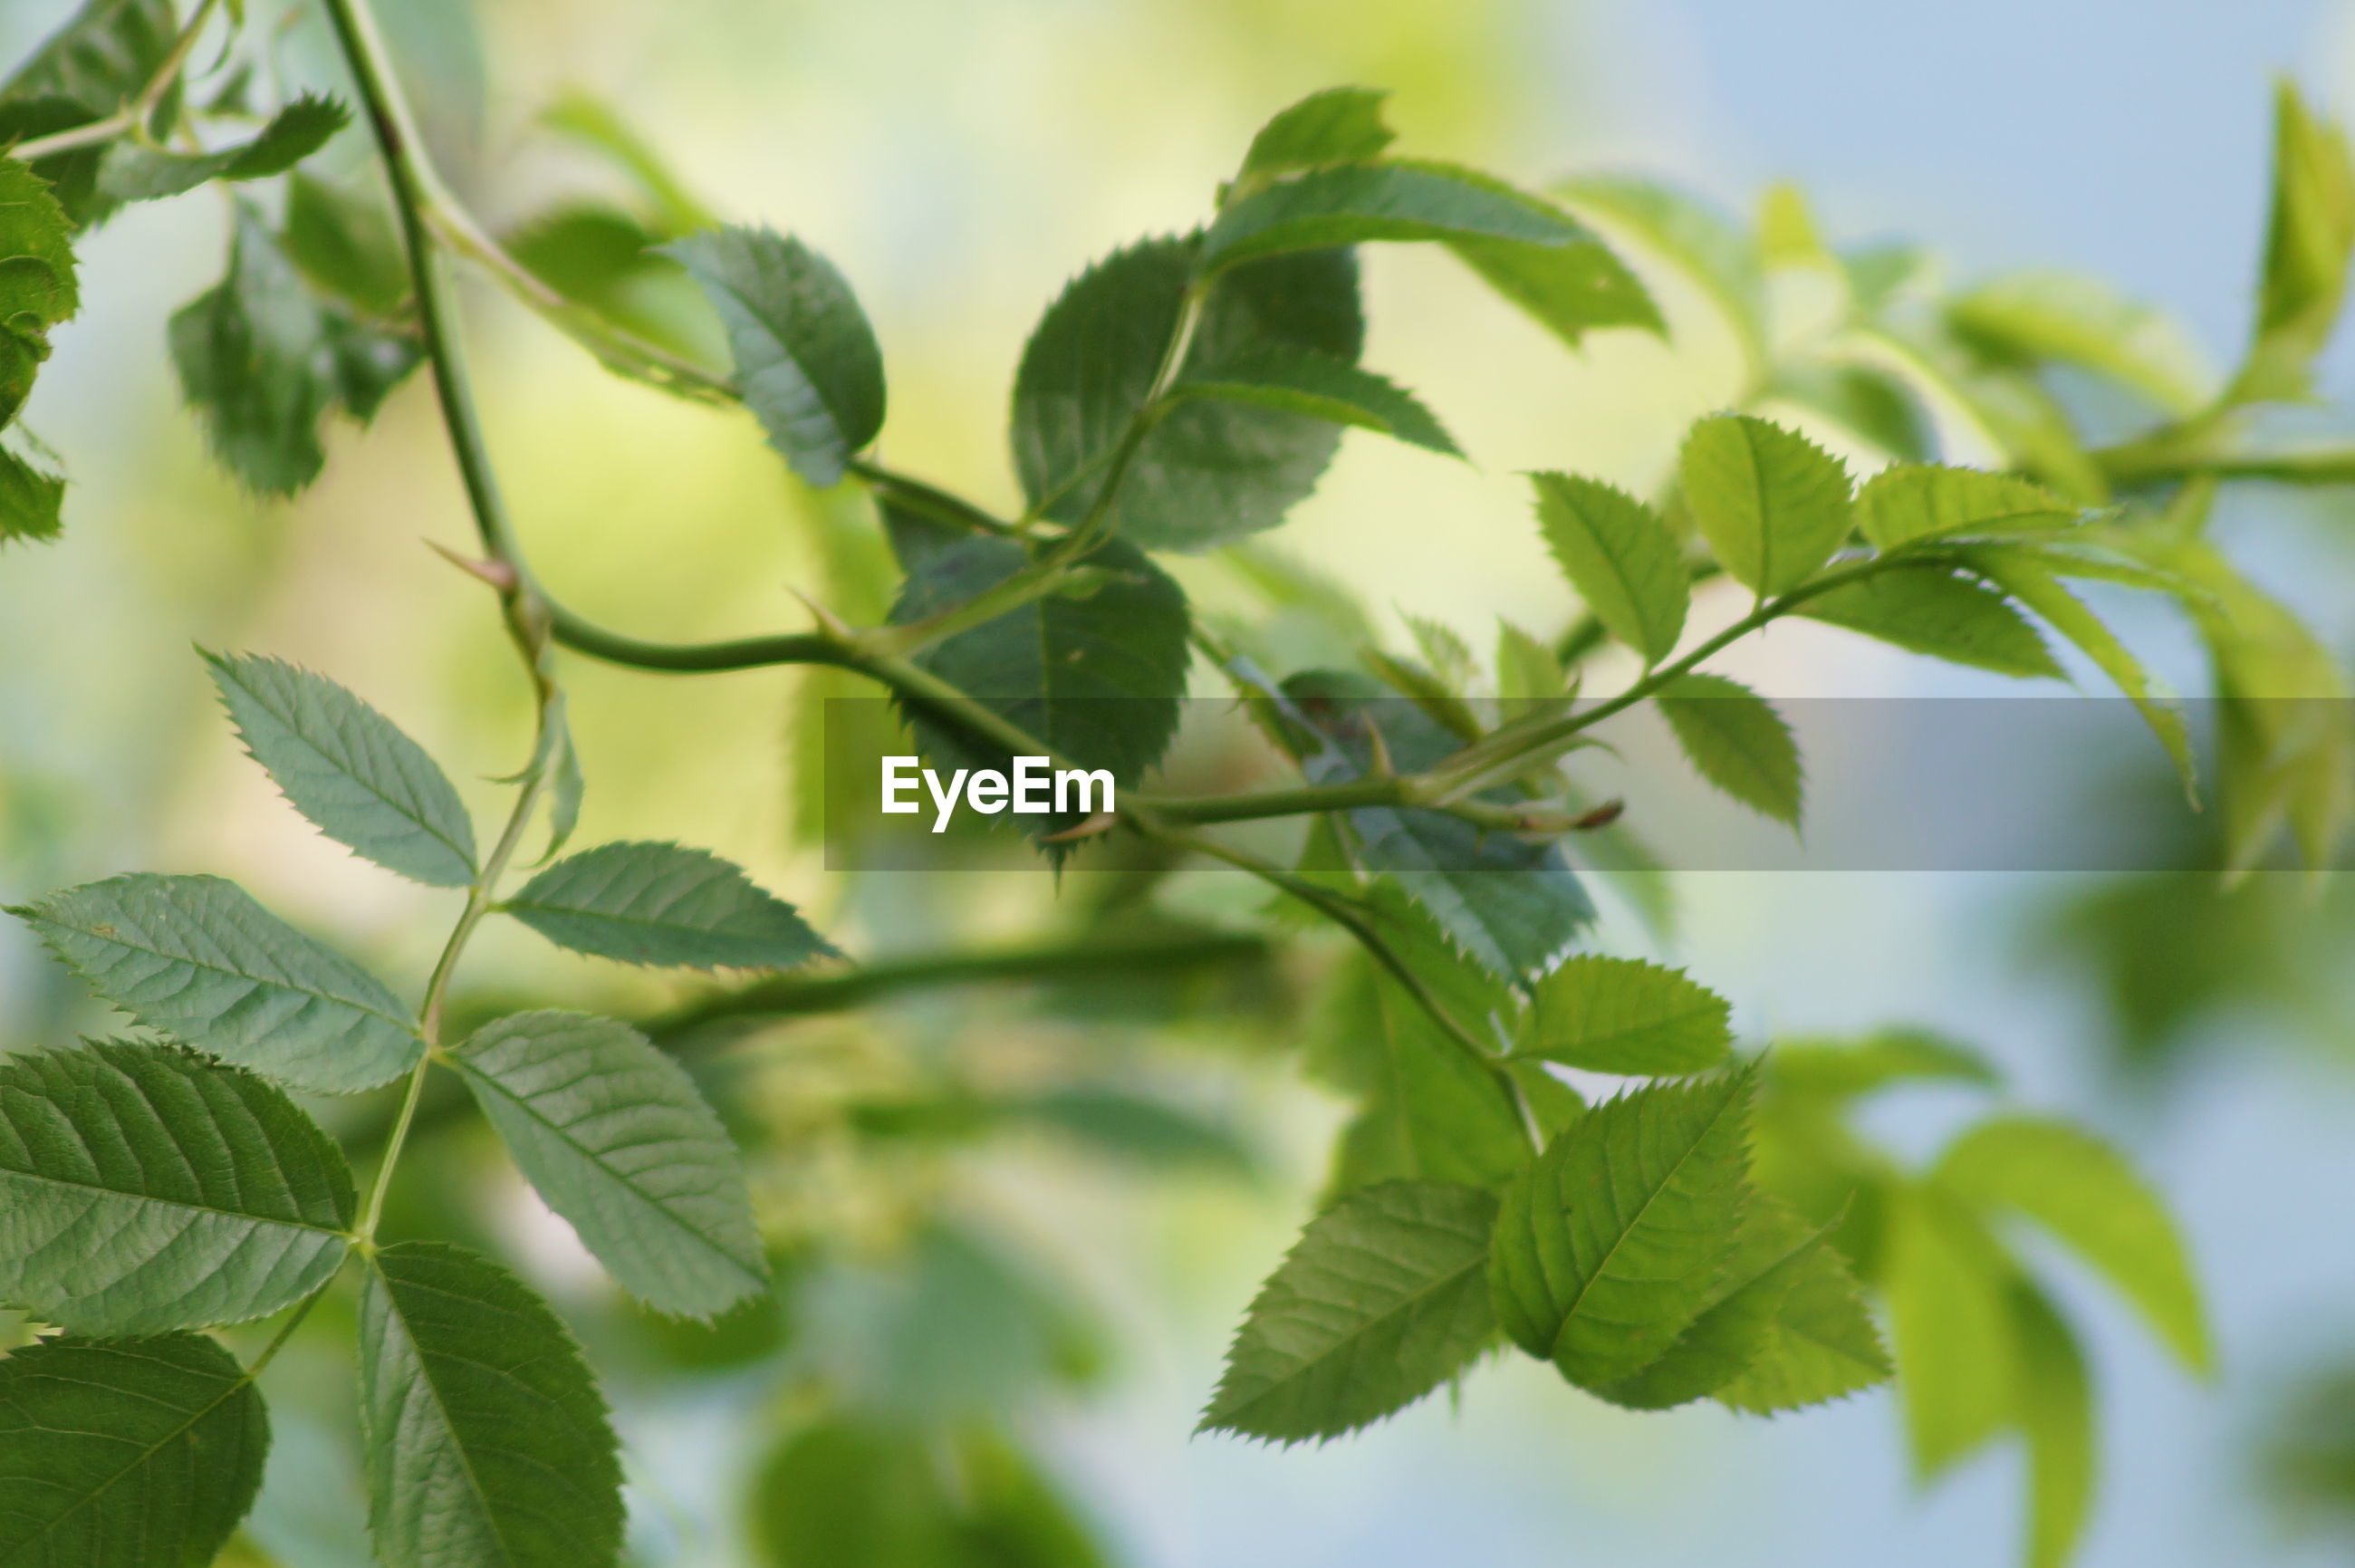 leaf, green color, growth, plant, nature, no people, outdoors, beauty in nature, day, freshness, close-up, fragility, tree